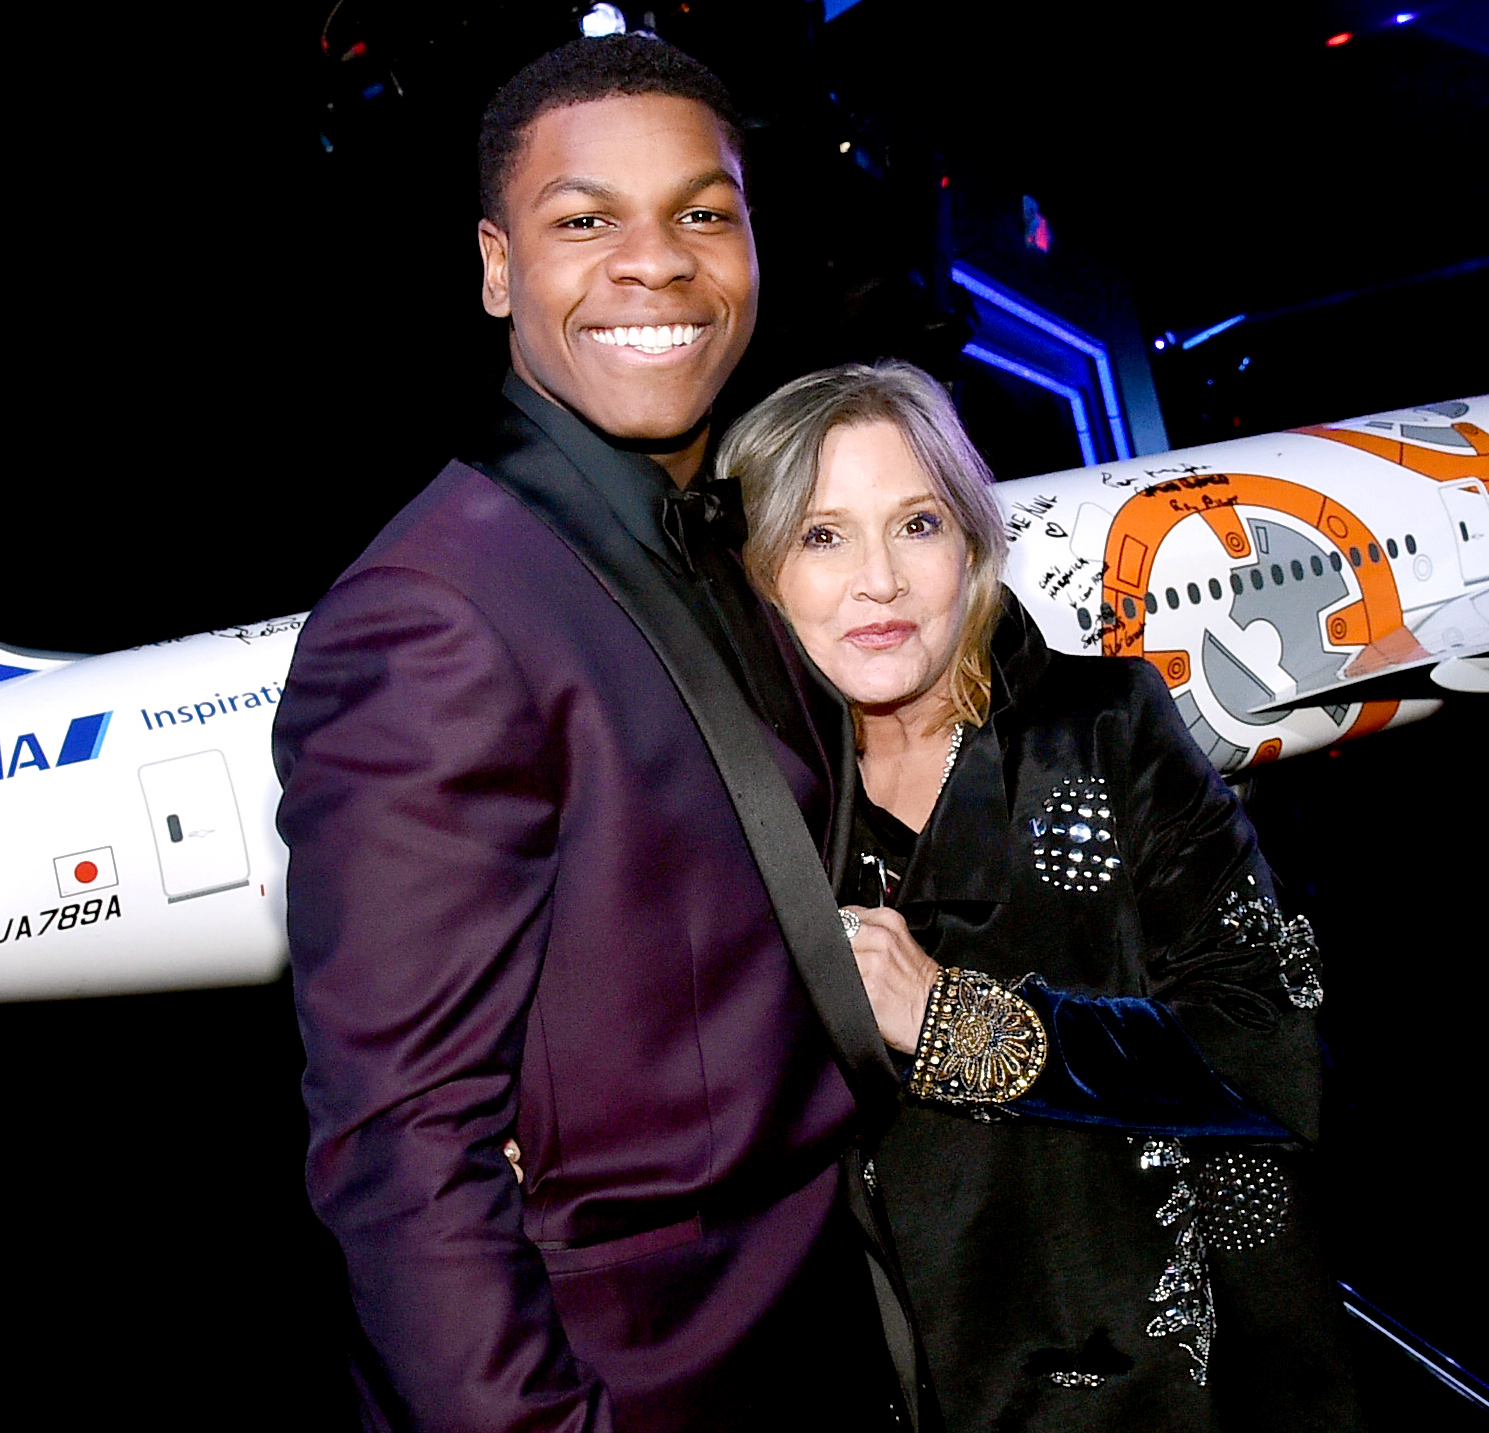 John Boyega and Carrie Fisher attend the world premiere of